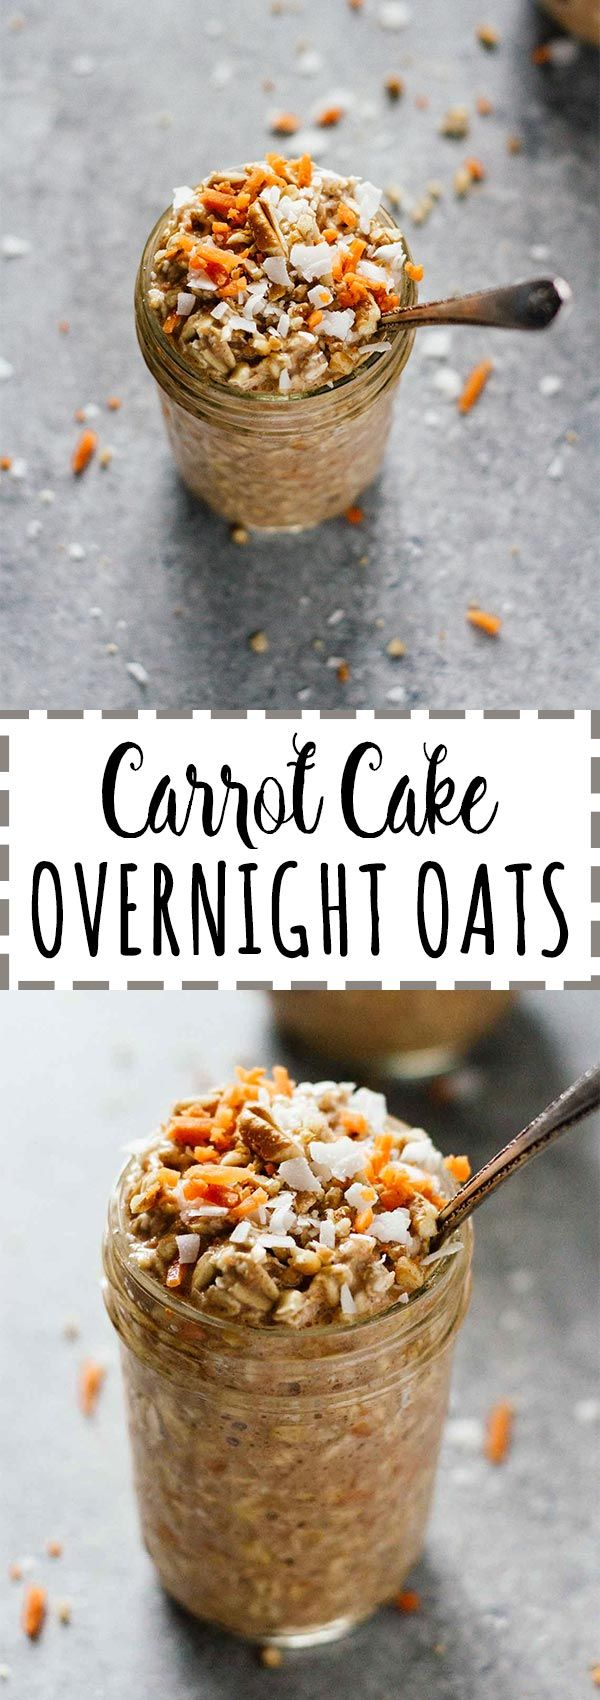 Carrot Cake Overnight Oats! Make these in about 5 minutes the night before, then take them on-the-go for breakfast in the morning! Vegan, vegetarian, gluten free, refined sugar free, and so easy. Love these!!